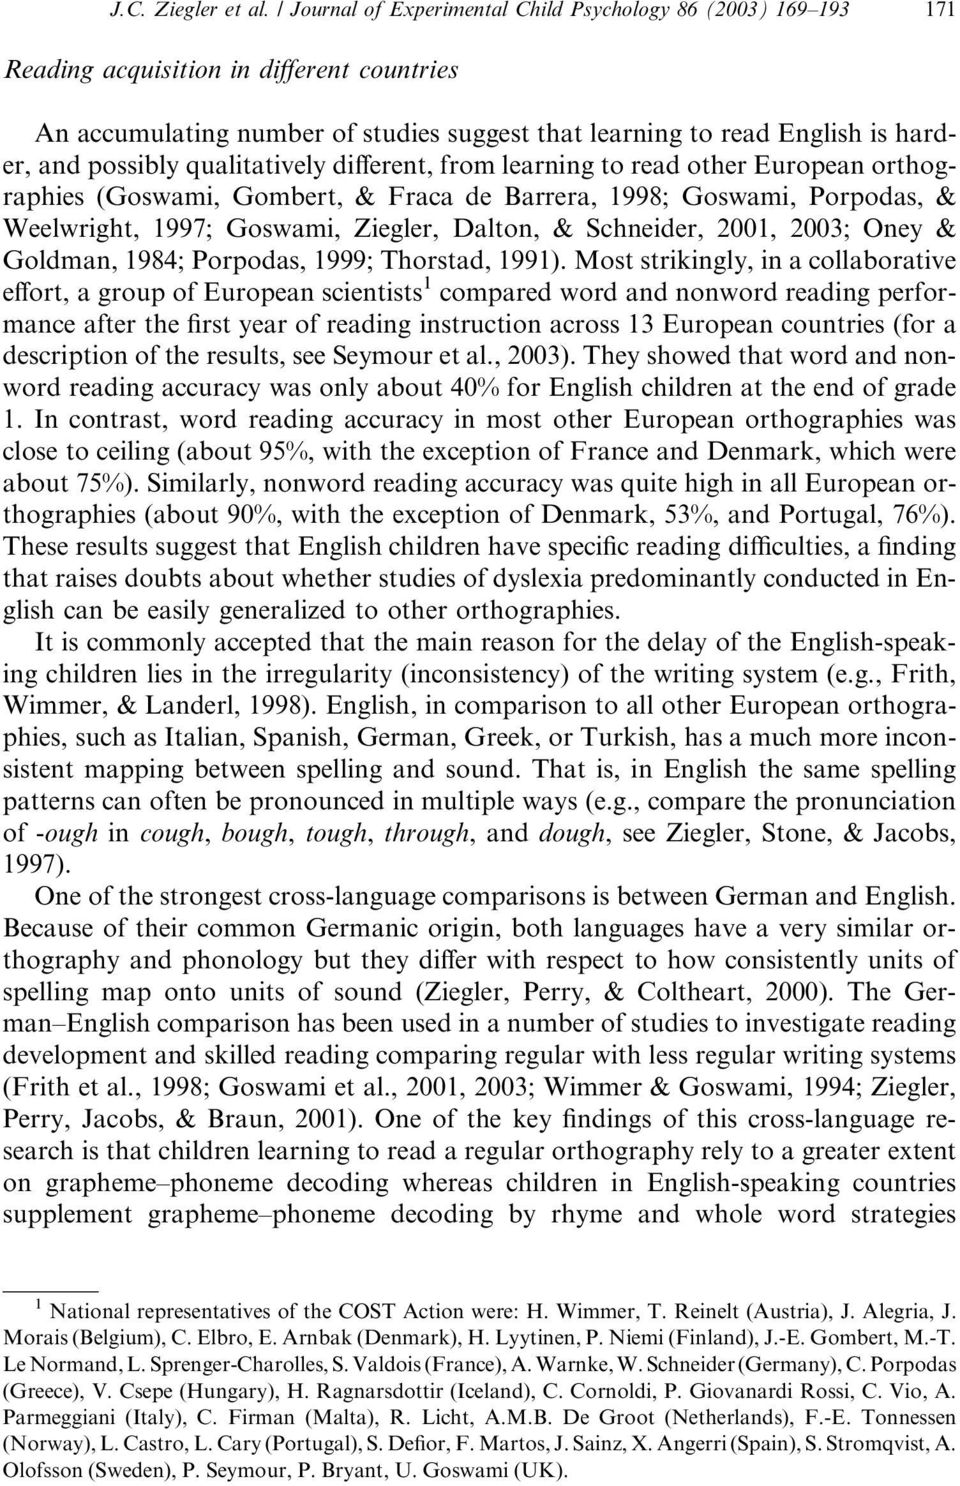 possibly qualitatively different, from learning to read other European orthographies (Goswami, Gombert, & Fraca de Barrera, 1998; Goswami, Porpodas, & Weelwright, 1997; Goswami, Ziegler, Dalton, &